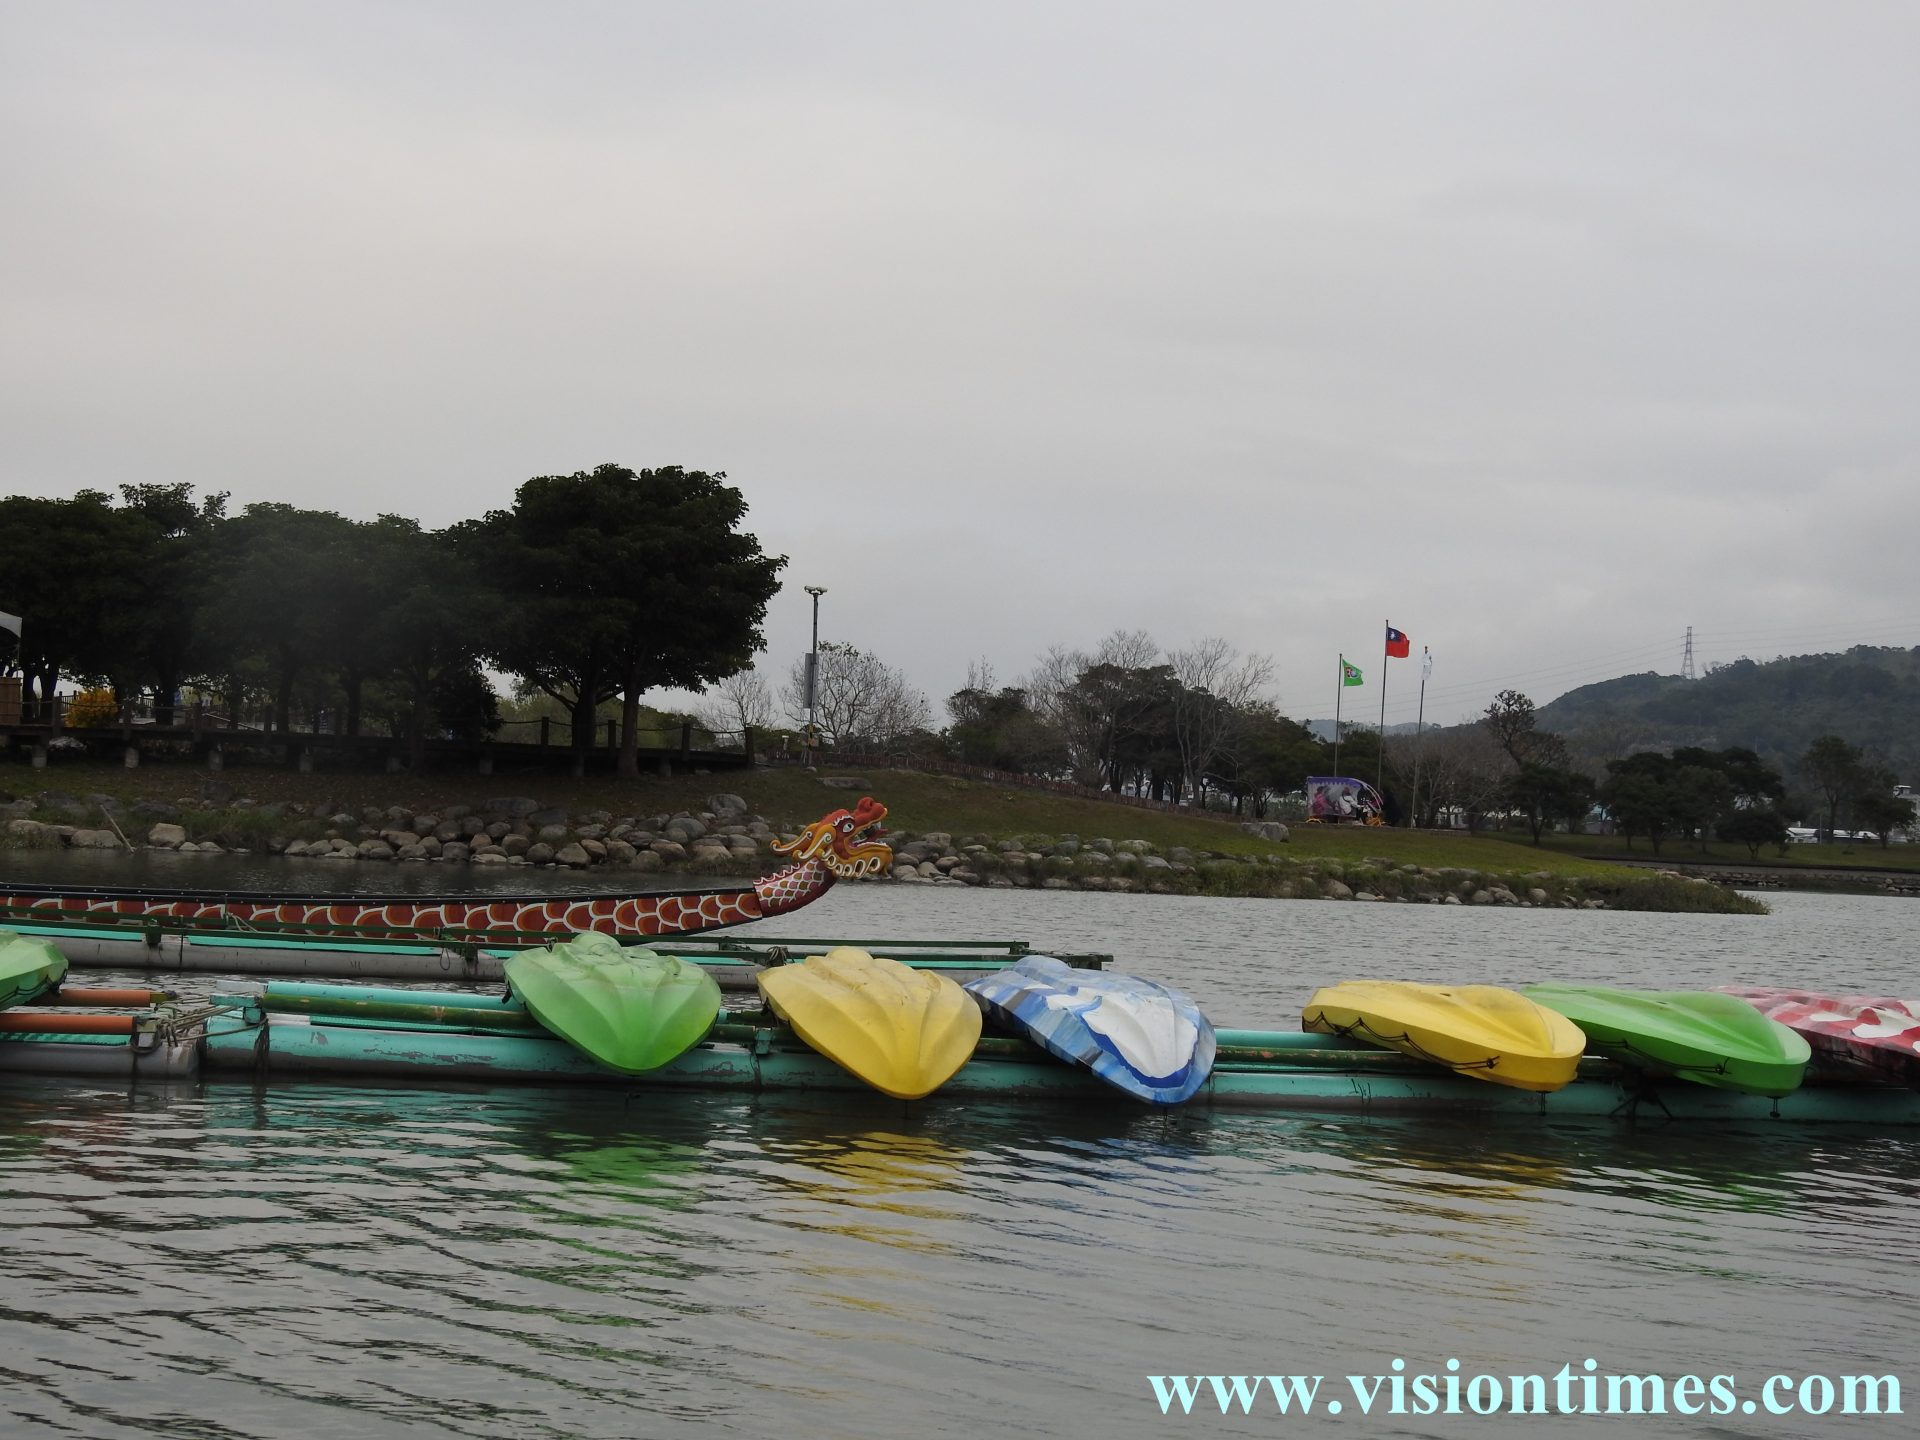 Visitors can have a boat ride at Dapo Pond (大坡池), and bike on the trails around the Pond. (Image: Julia Fu / Vision Times)